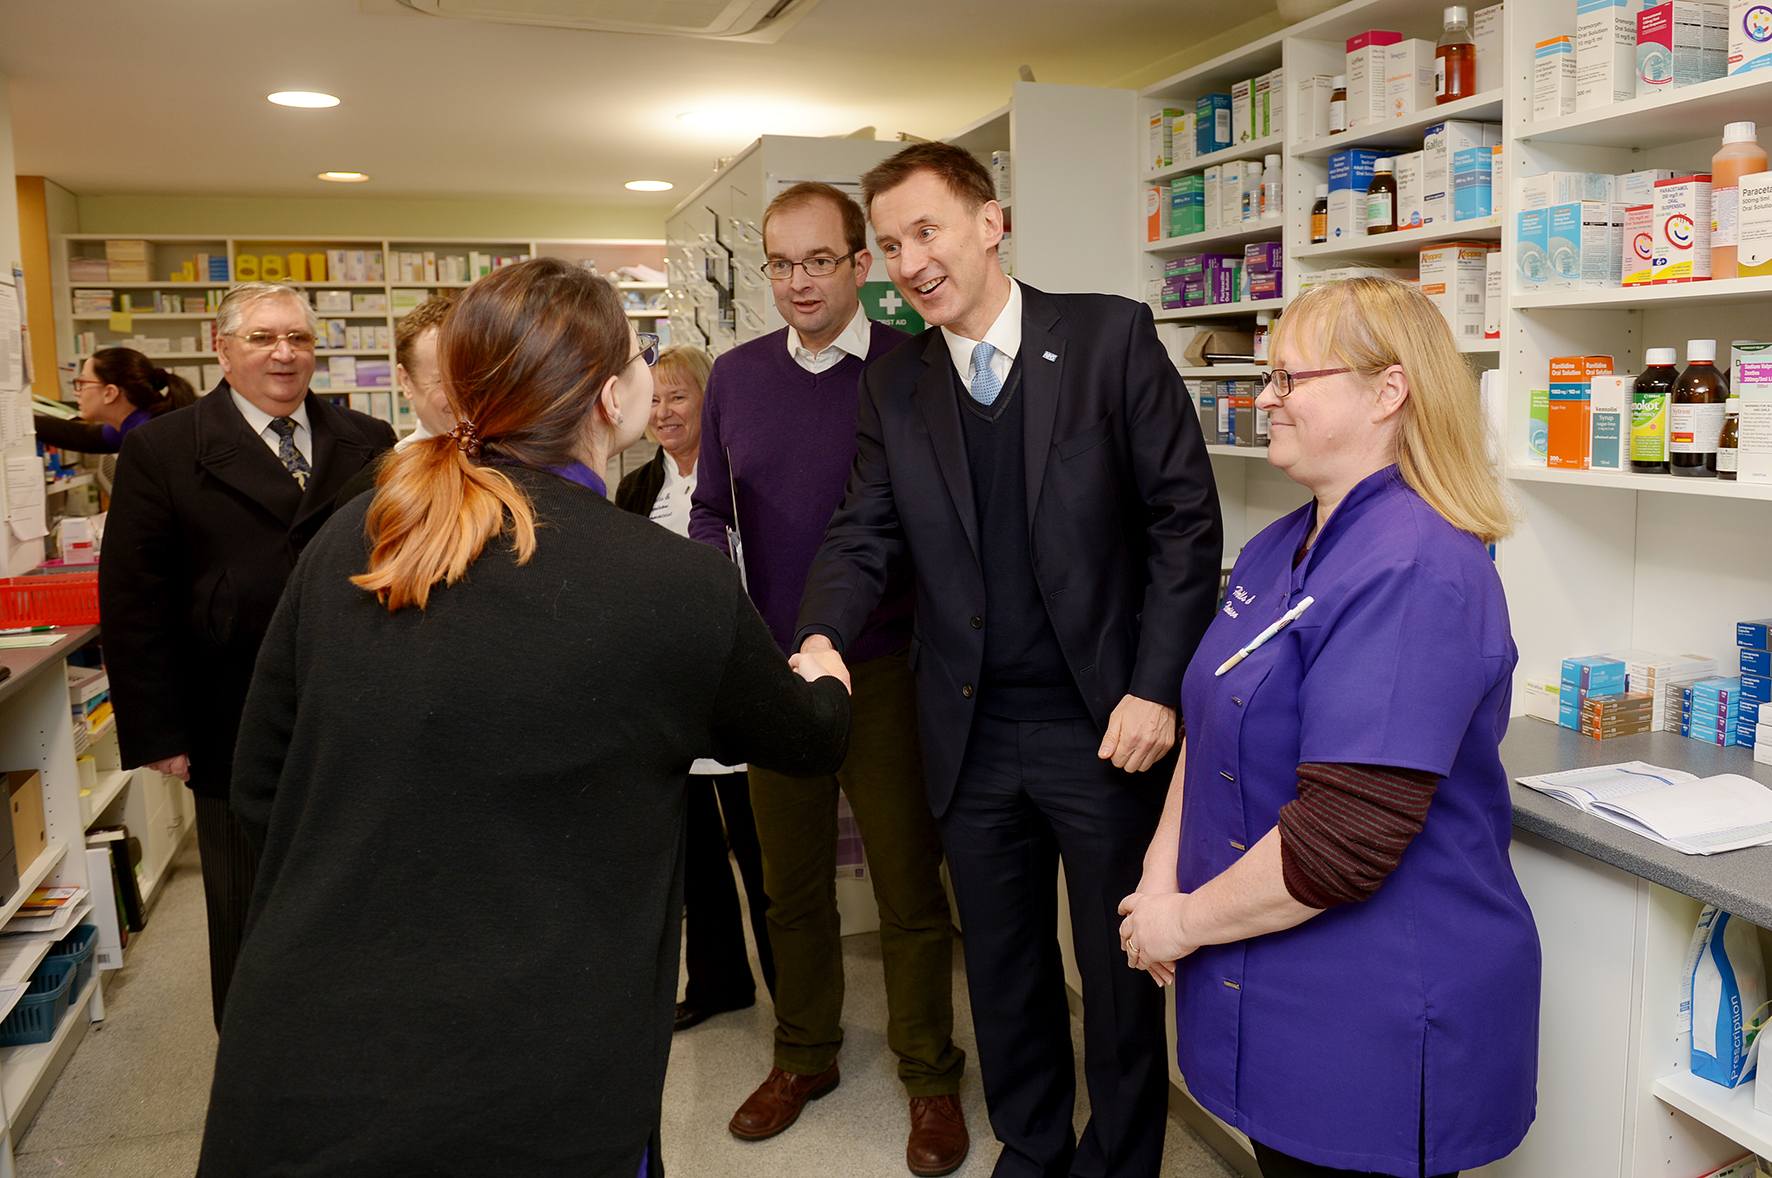 Flying visit - Health Minister Jeremy Hunt with James Duddridge and Southend Council leader John Lamb